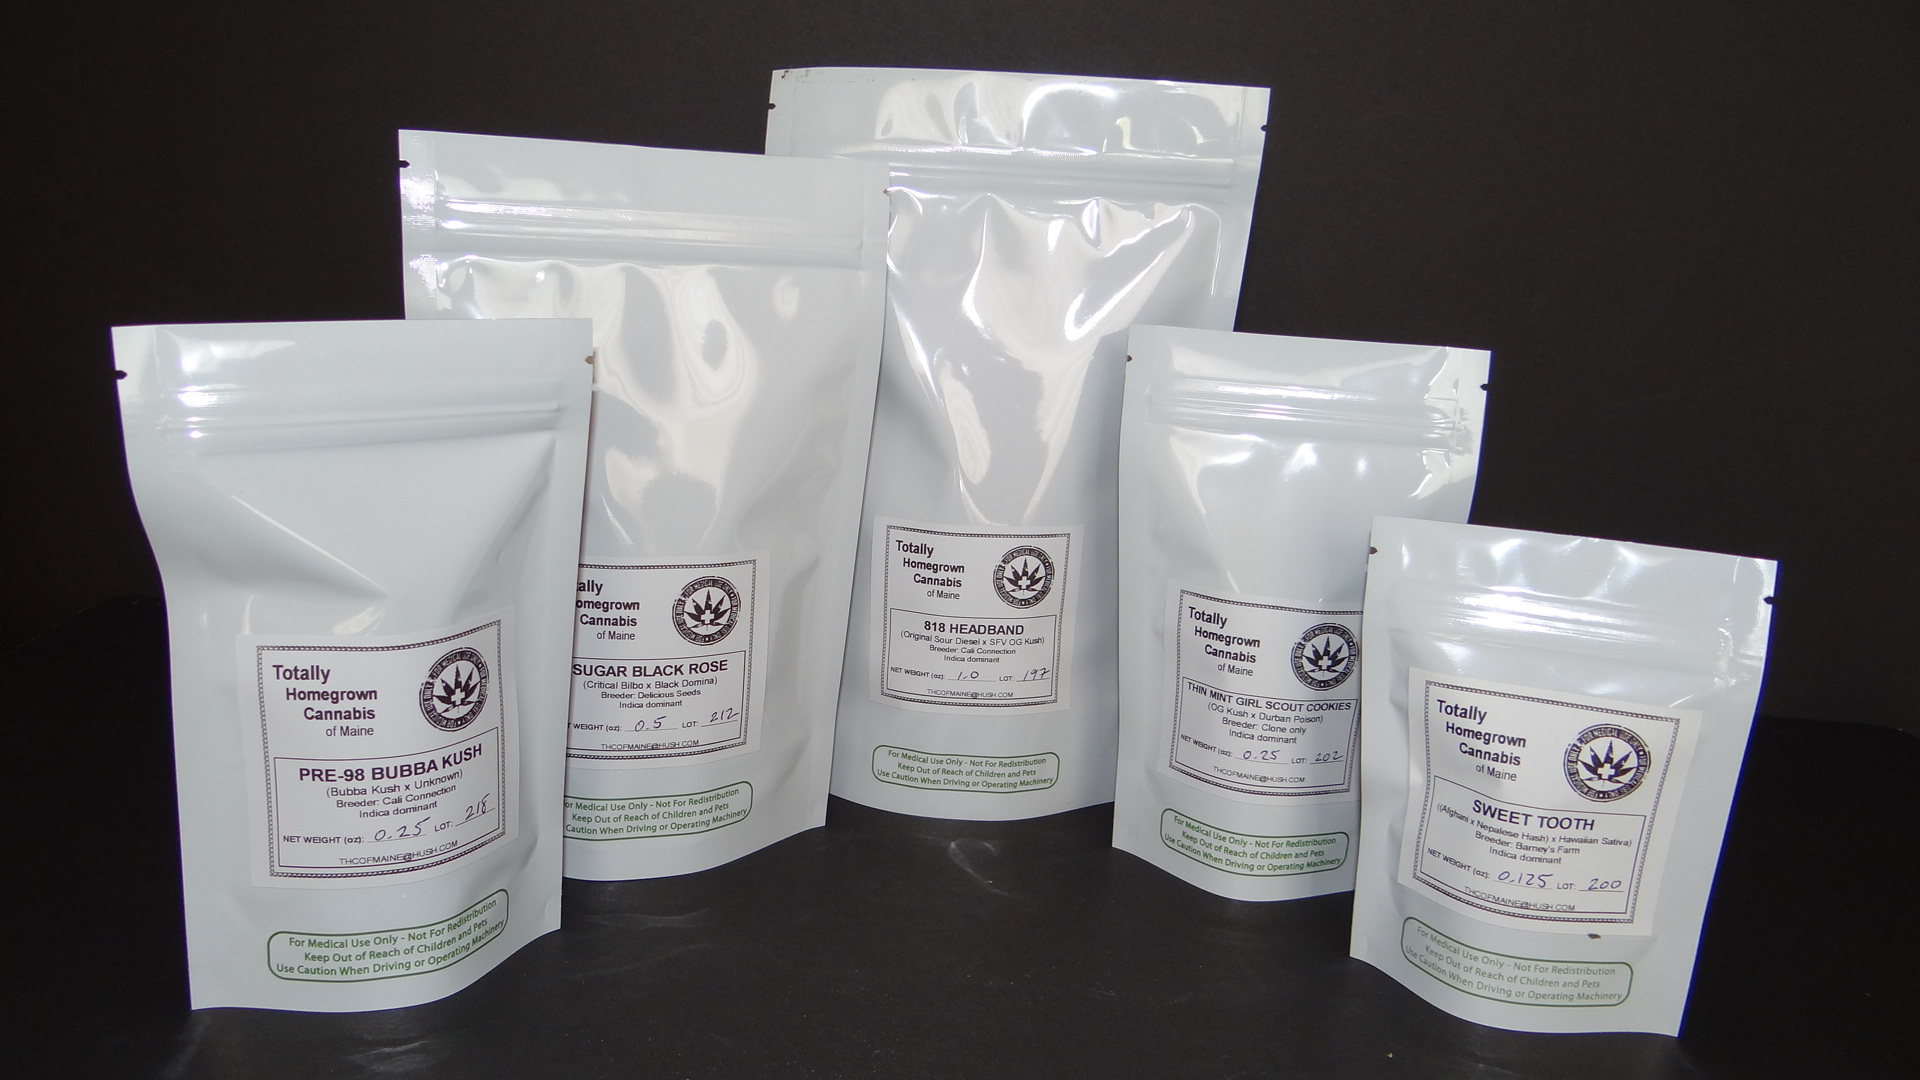 - Nearly all of the plant products we offer are carefully packaged in quality resealable bags, and labeled with strain name, specific genetic background, sativa / indica ratio, accurate weight and lot number